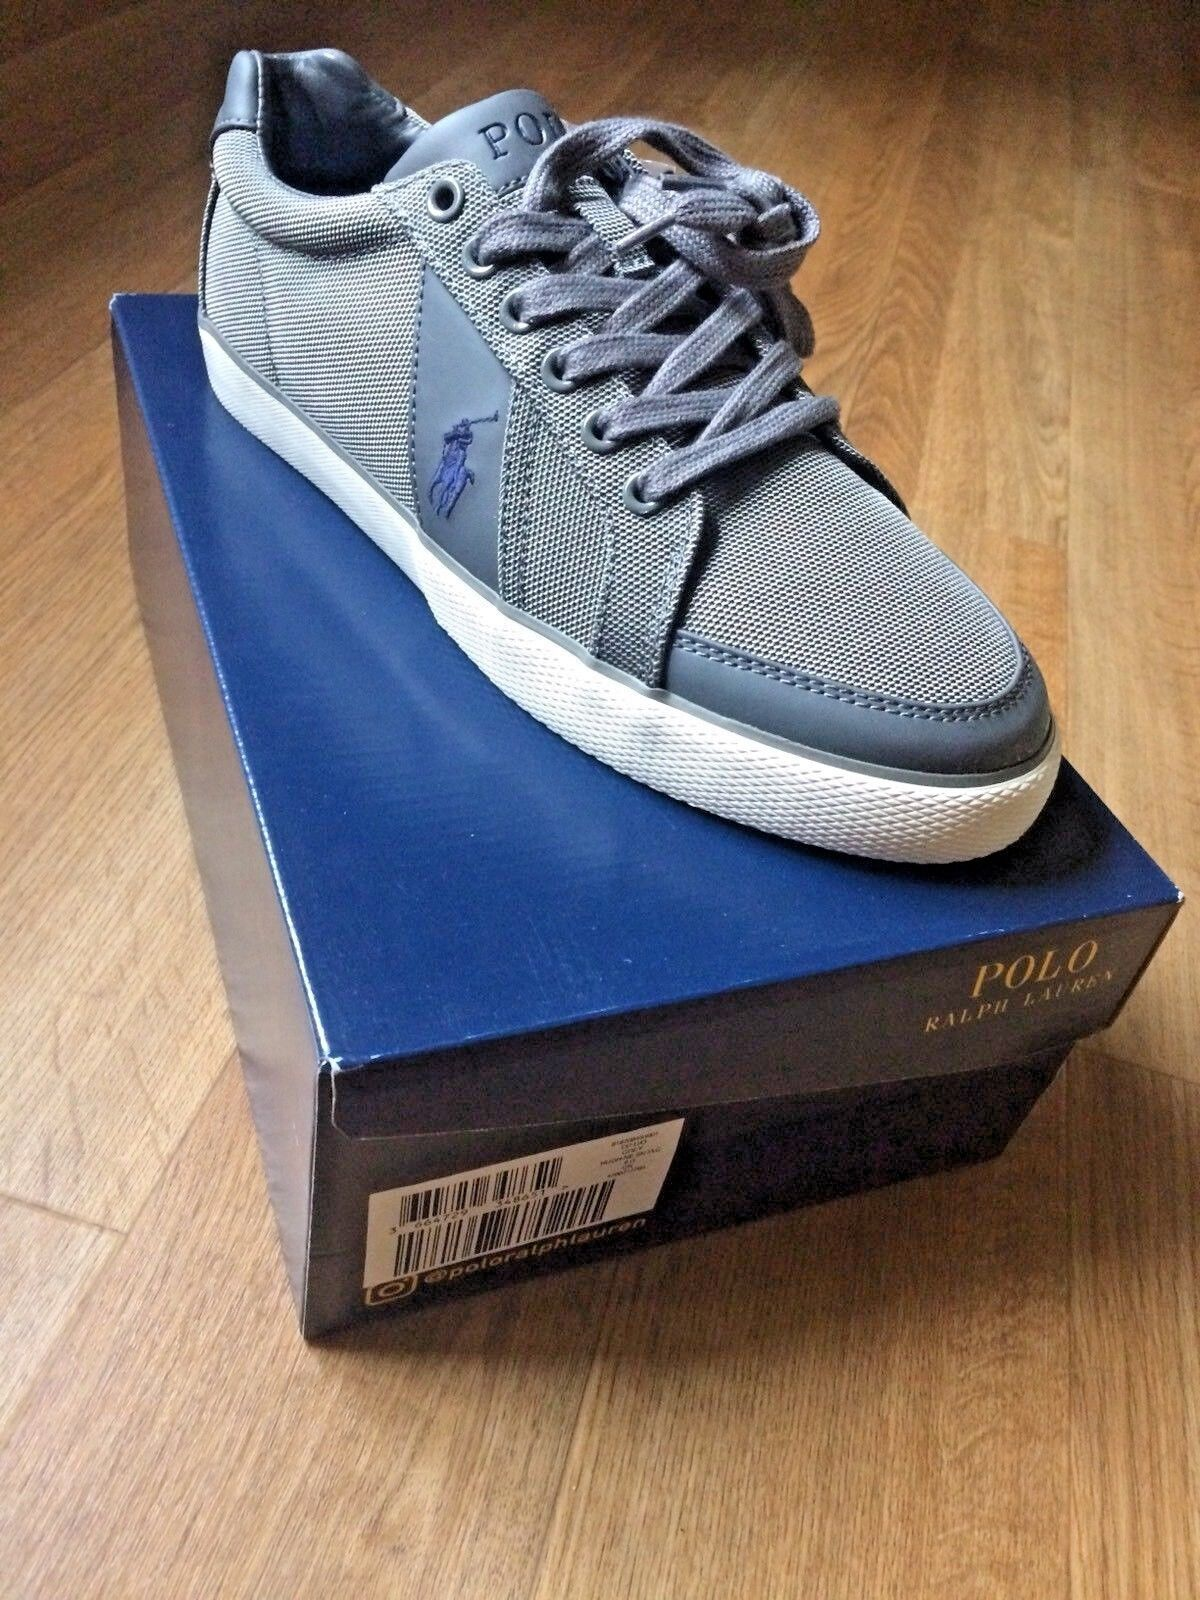 Ralph Lauren Polo Grey Hugh shoes Trainers Brand New In Box BNIB